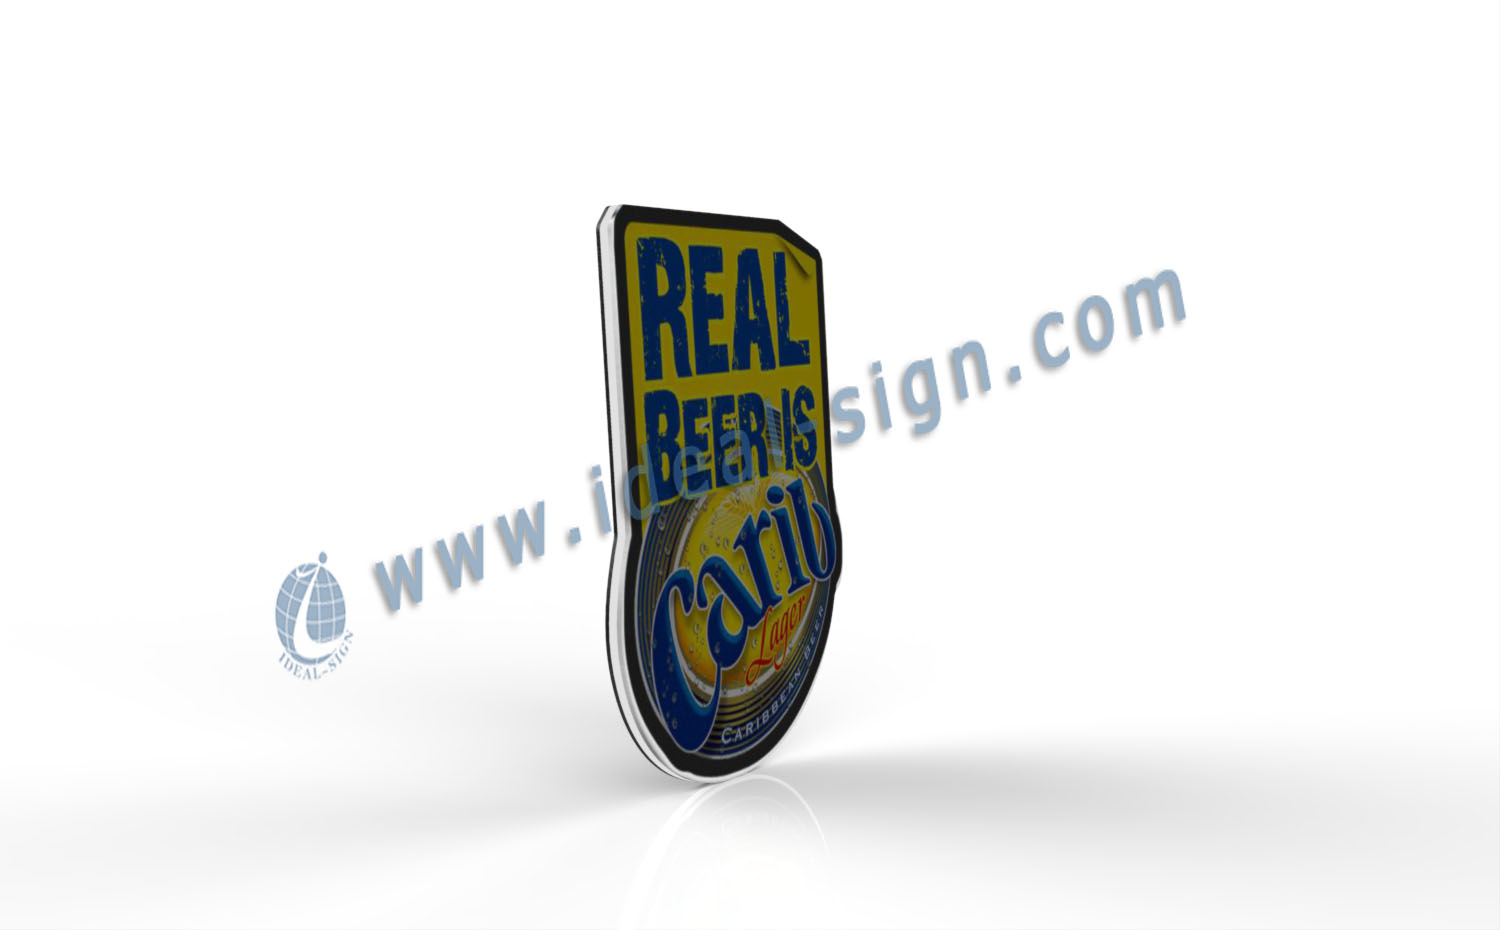 Beer Brand LED Slim Light Signs for Displaying